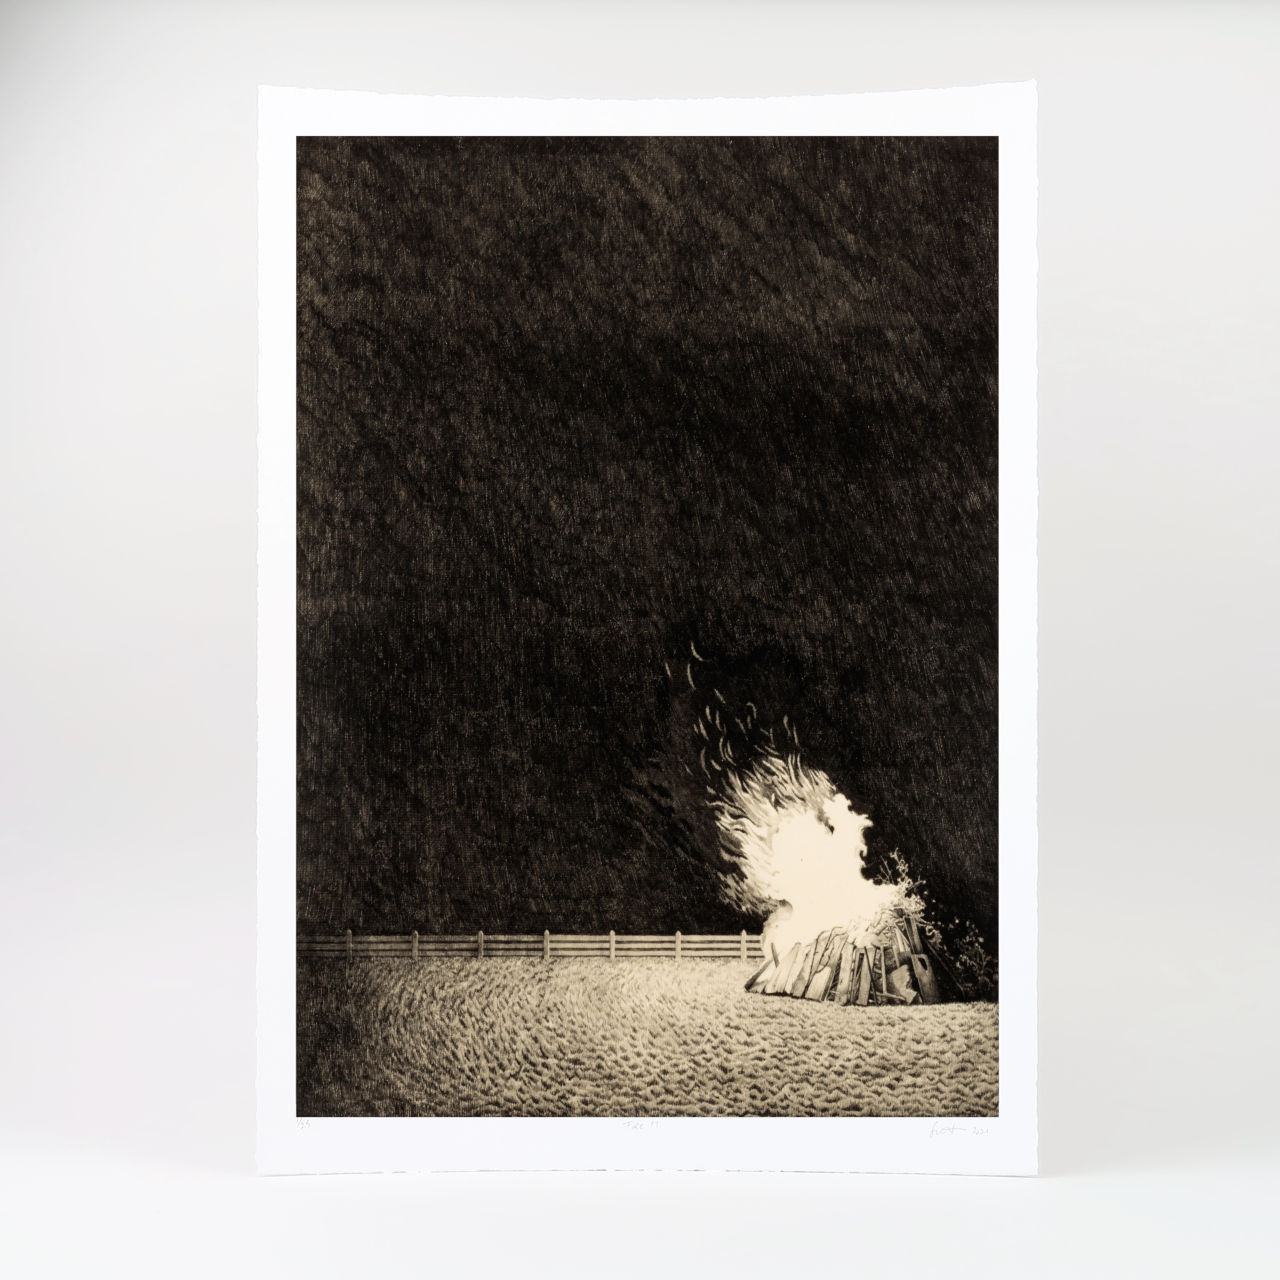 Limited Edition Giclée Print - Fire 11